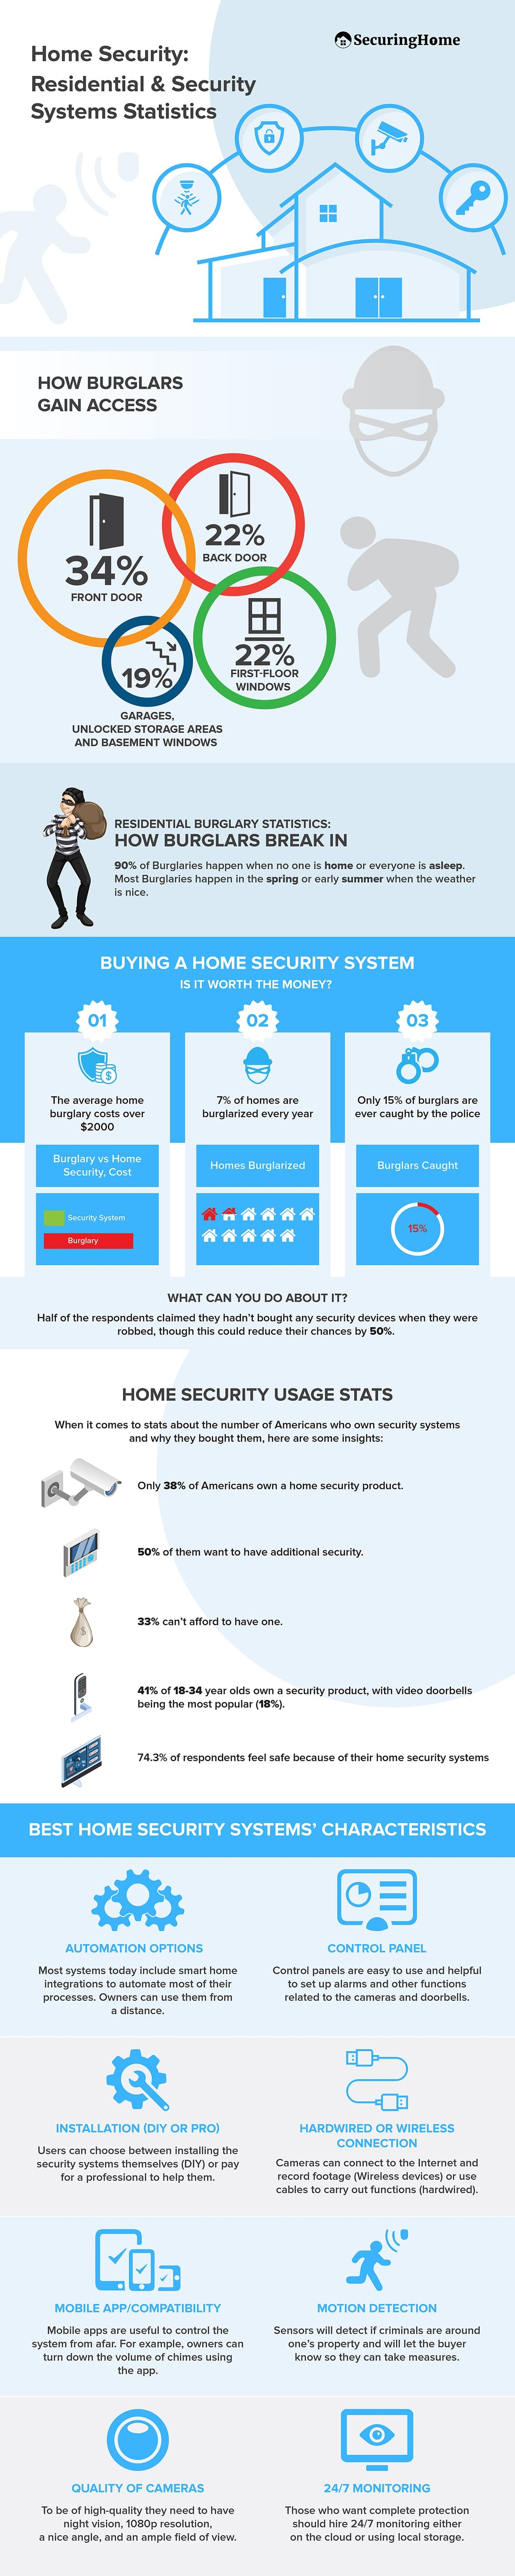 Home Security: Residential & Security System Statistics #infographic